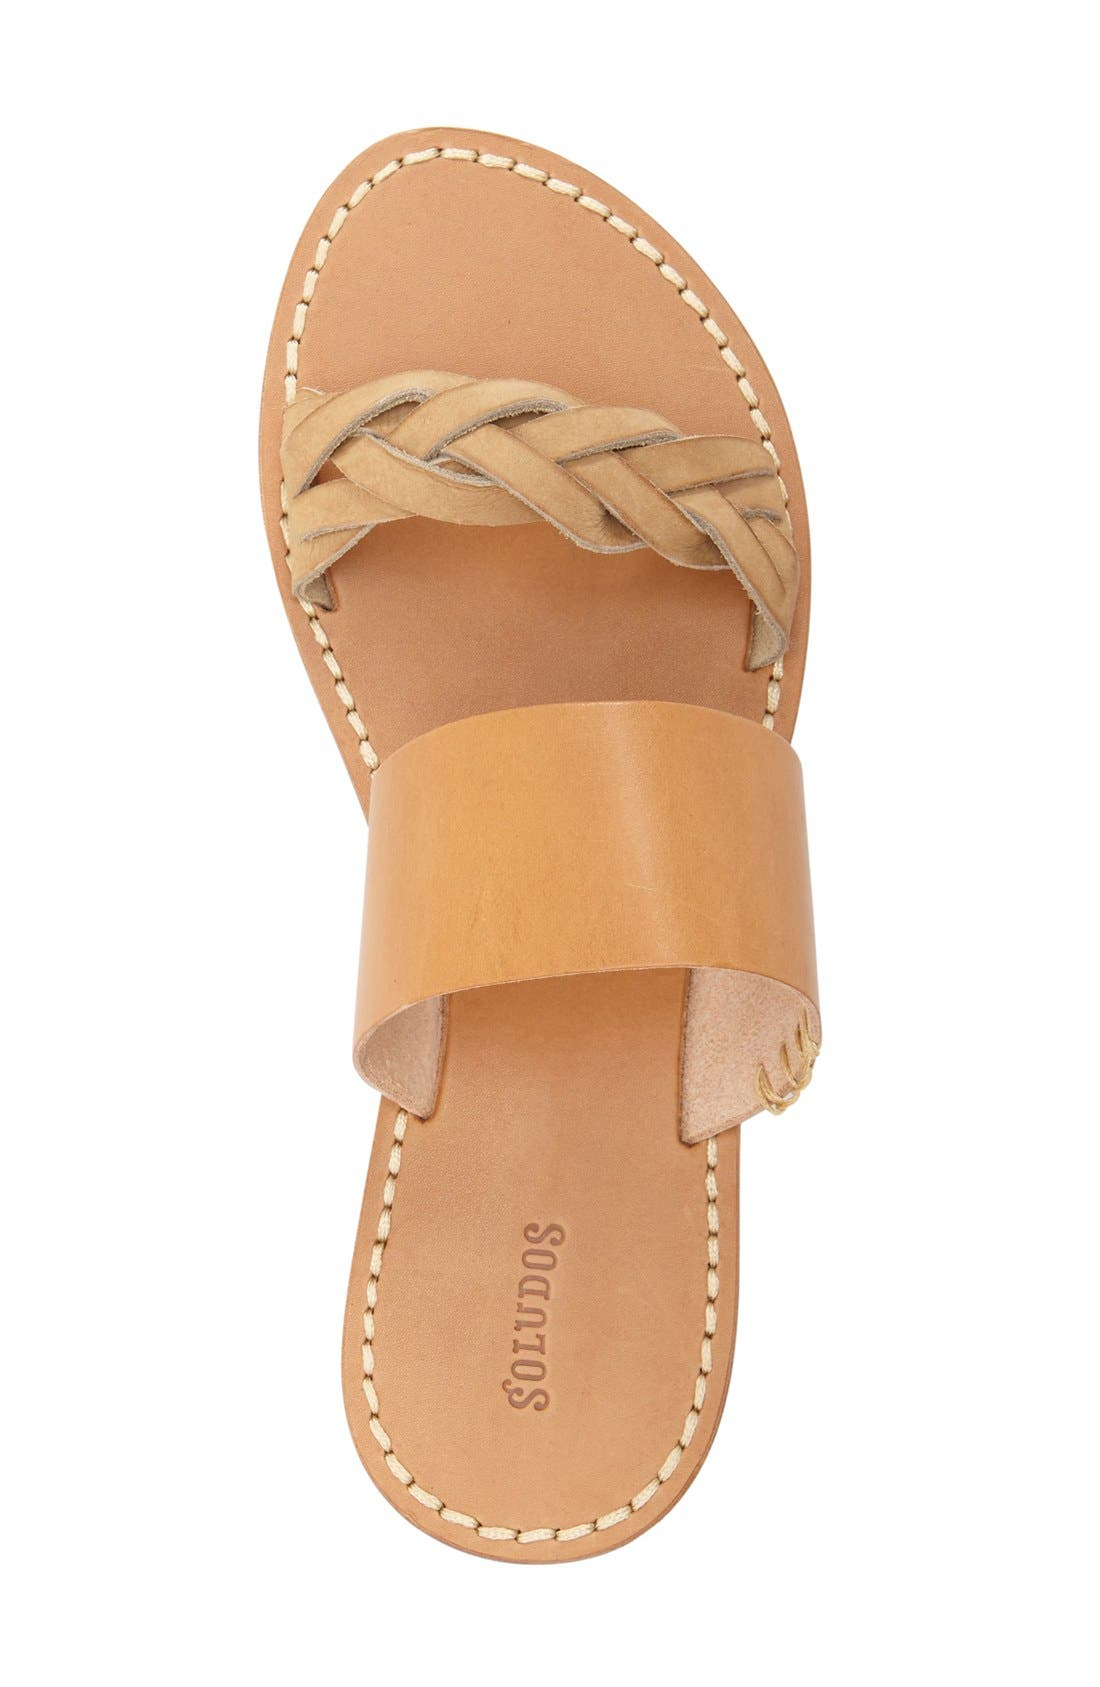 SOLUDOS, Slide Sandal, Alternate thumbnail 3, color, ACORN/ BROWN LEATHER